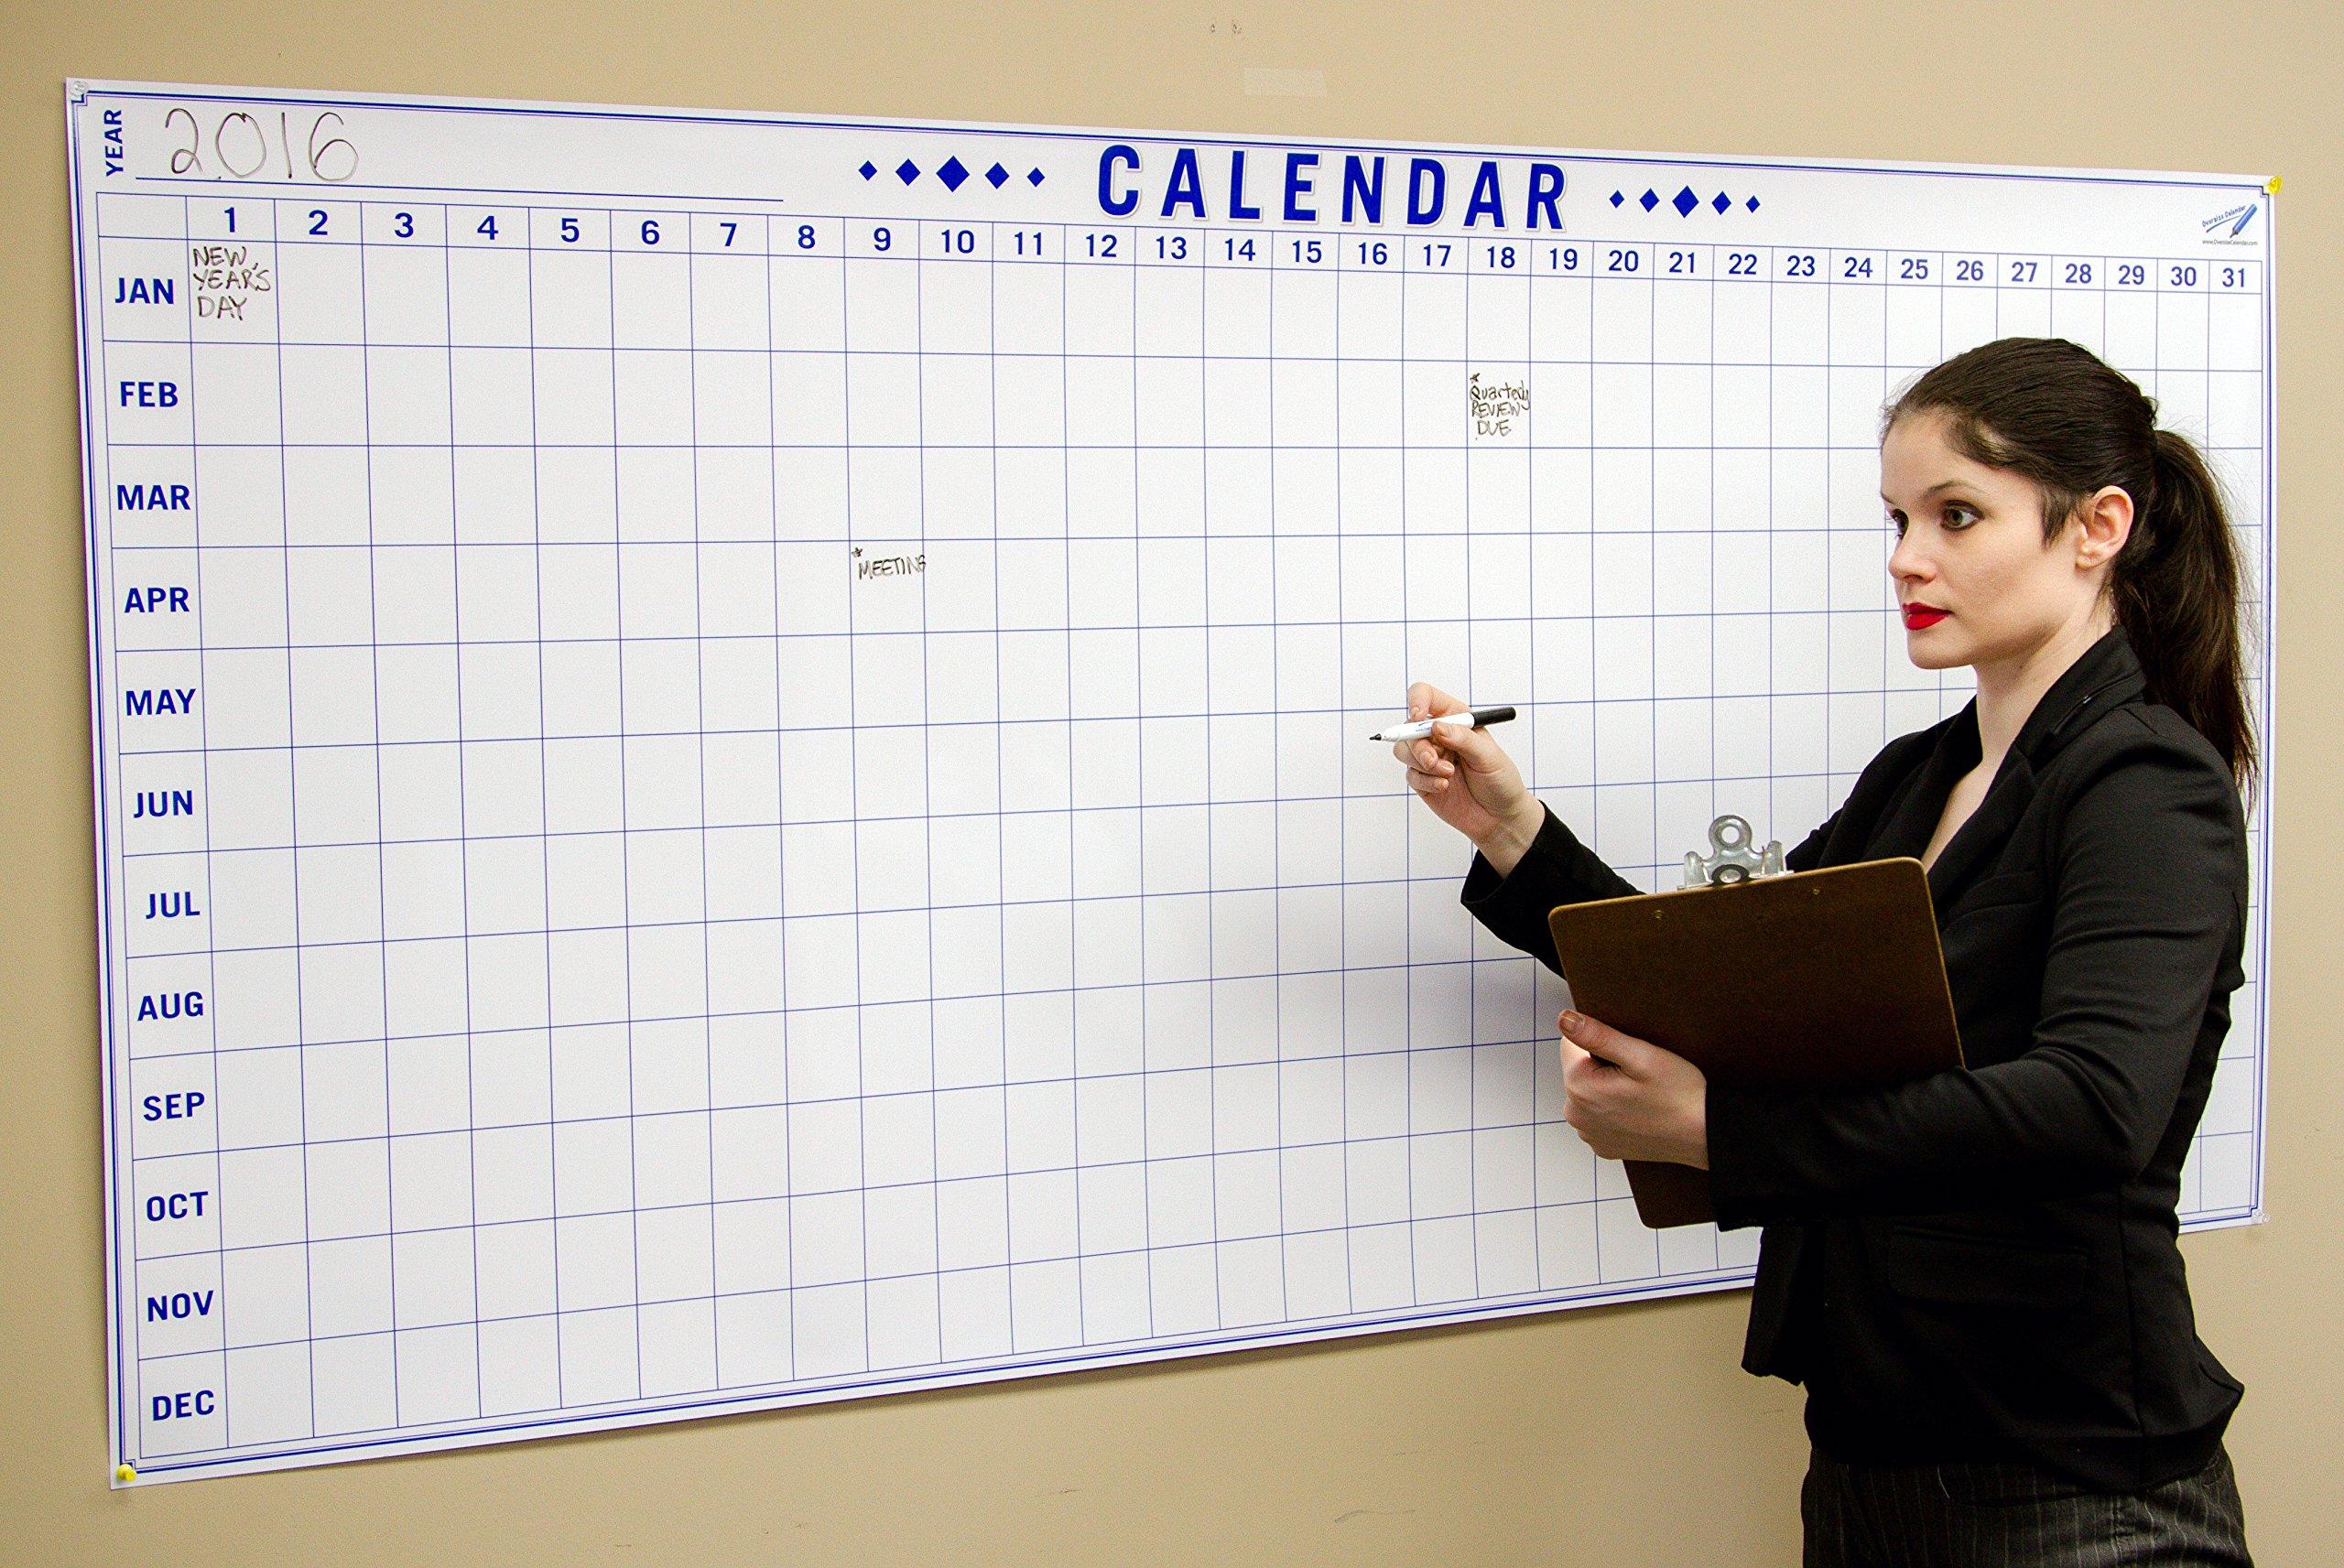 Dry Erase Julian Date Calendar - 36 x 72 Large Dry Erase Wall Calendar - Large Wall Calendar - Reusable Annual Calendar - Wall Planner with Vertical Dates and Horizontal Months by Oversize Planner by ABI Digital Solutions (Image #2)